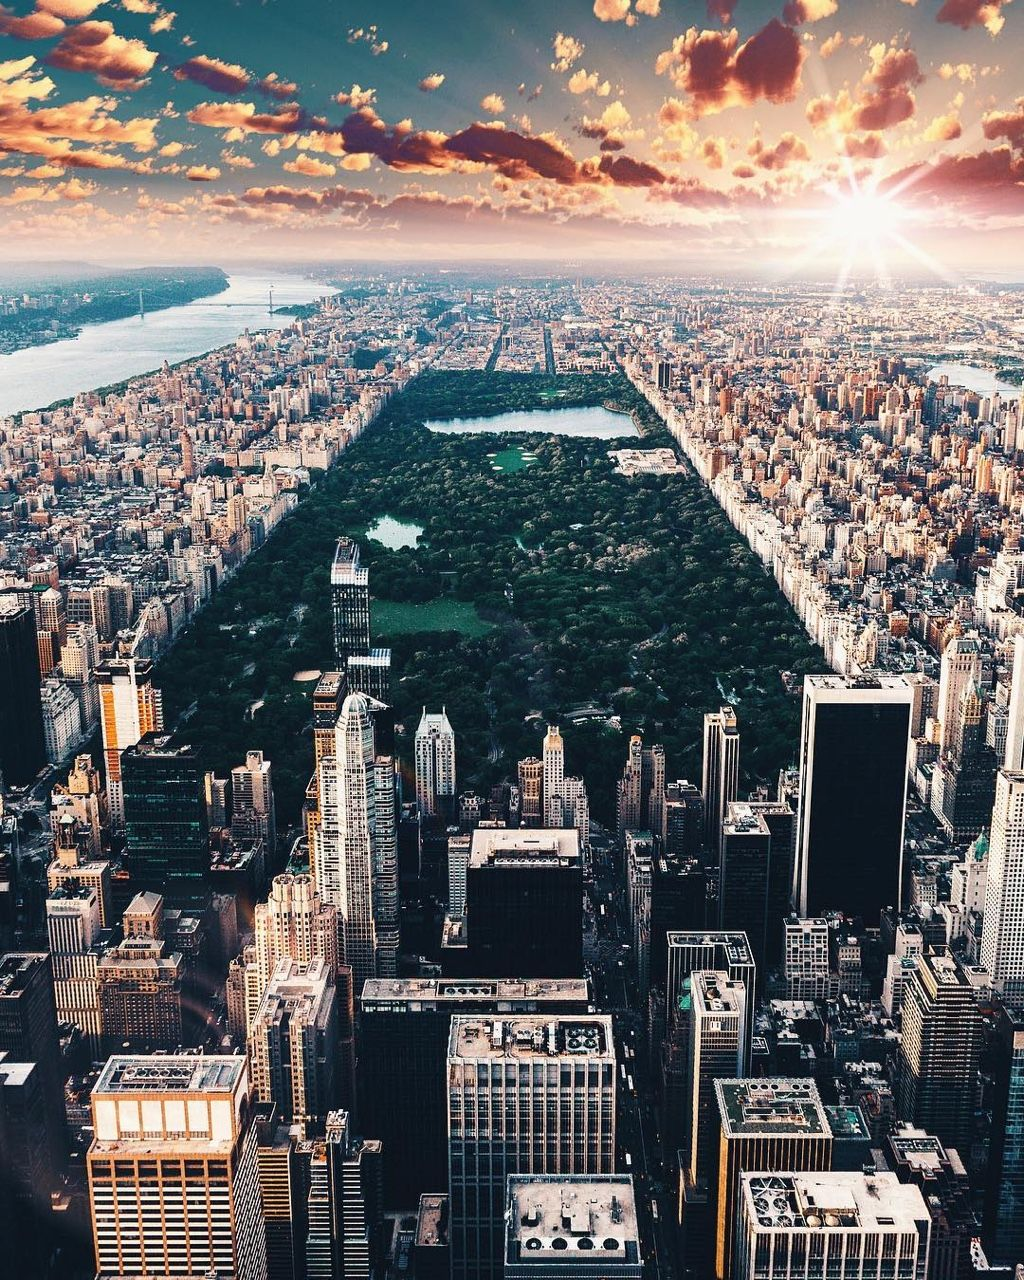 Kitchen Art America Brooklyn Ny: Good Morning New York City From The Gorgeous Central Park